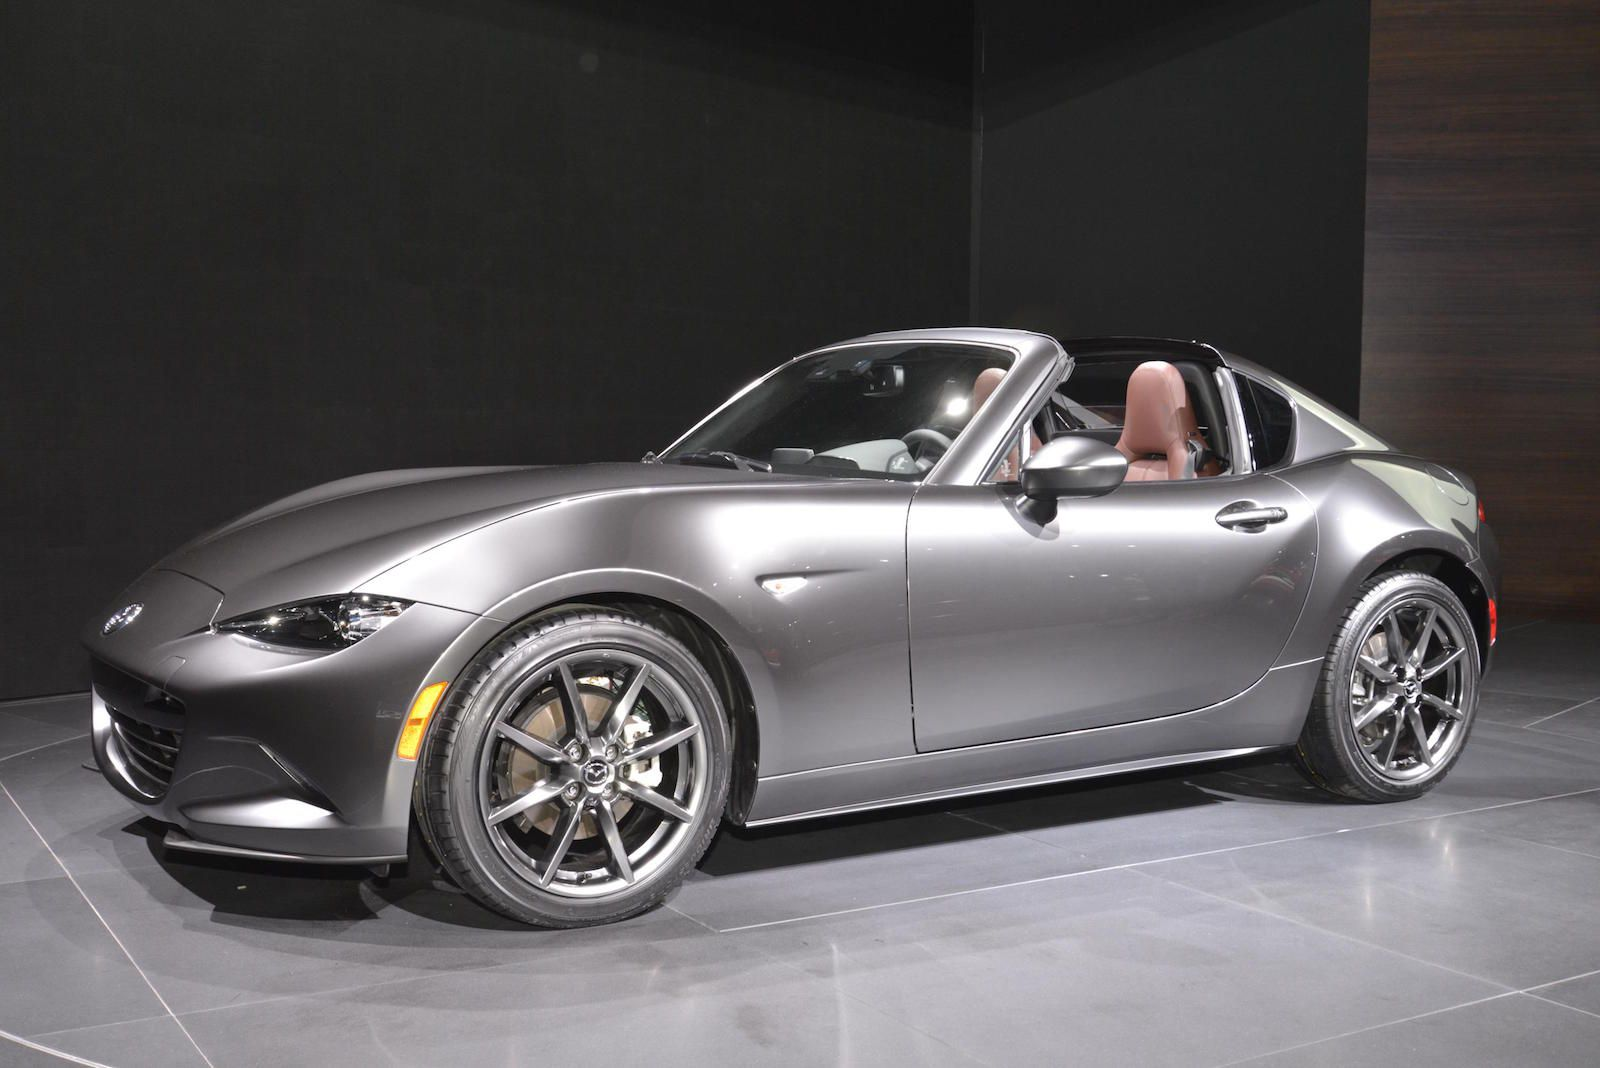 The 2019 Mazda Mx 5 Is Rumored To Be Coming Out With A 181 Horsepower Engine It S A Respectable Jump In Power And Is Much Mazda Miata Miata Hardtop Mazda Mx5